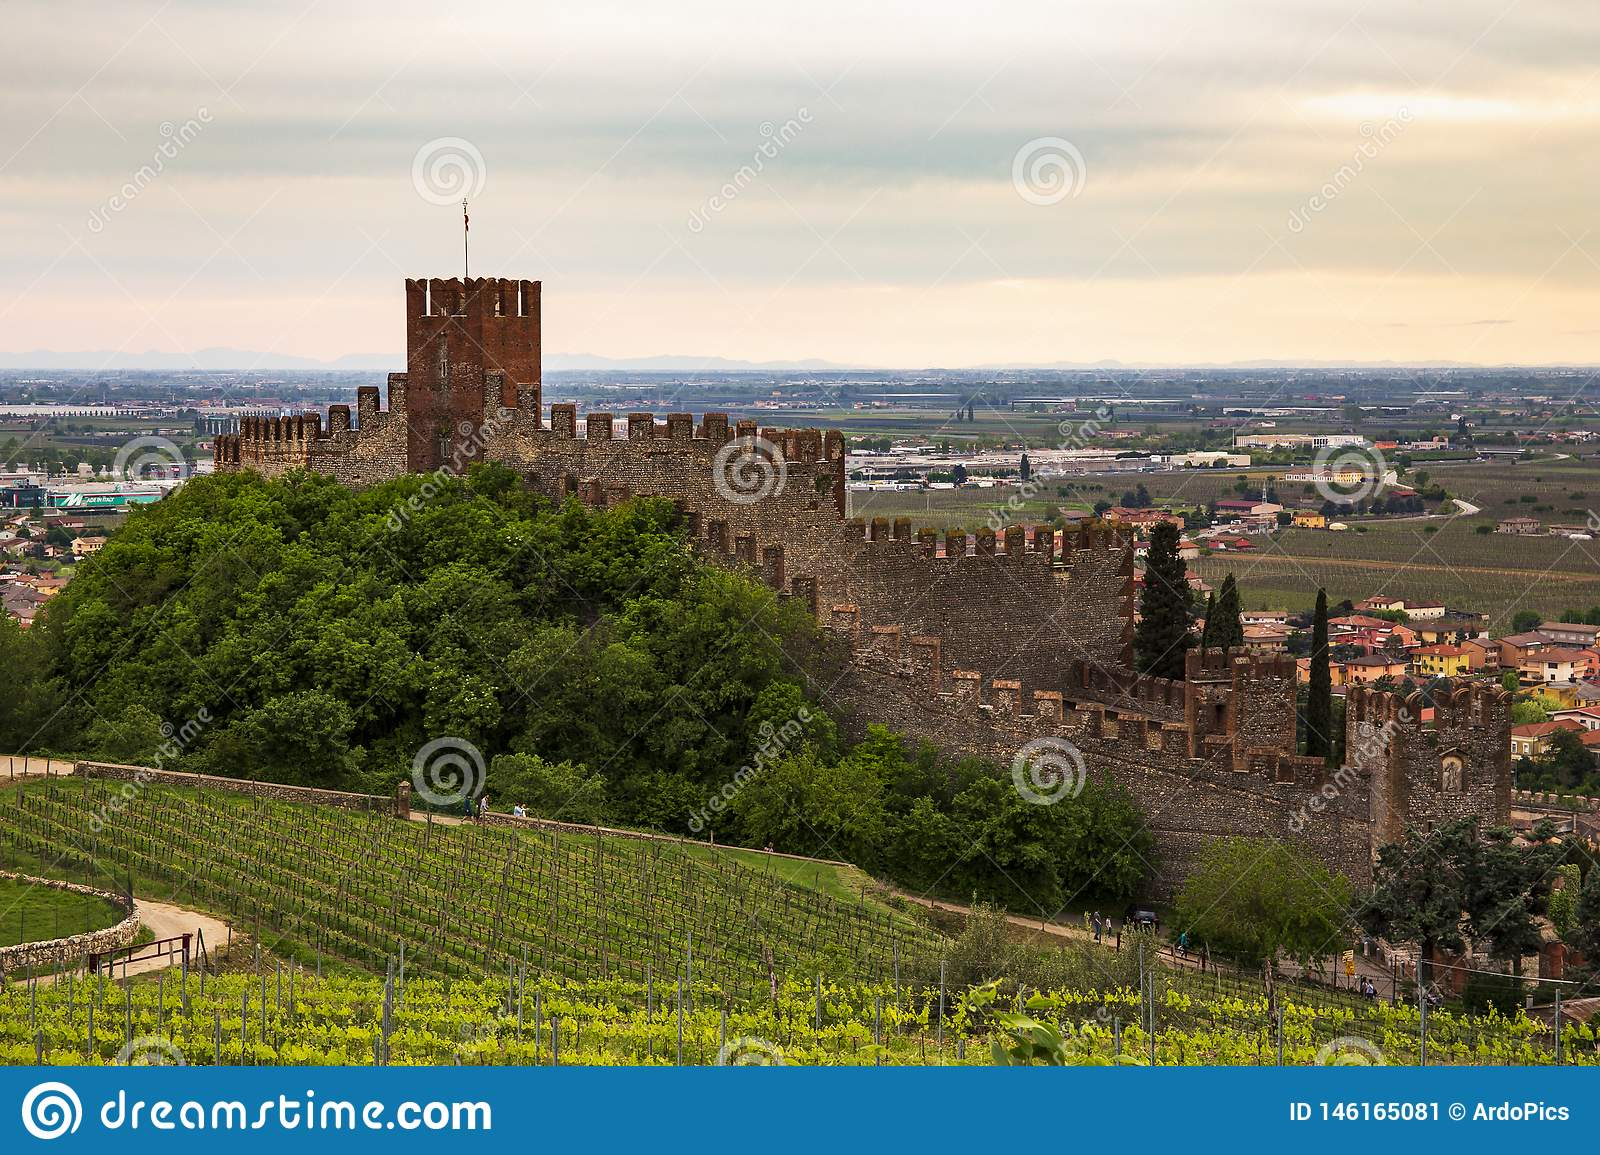 Castle of Soave, view from north side